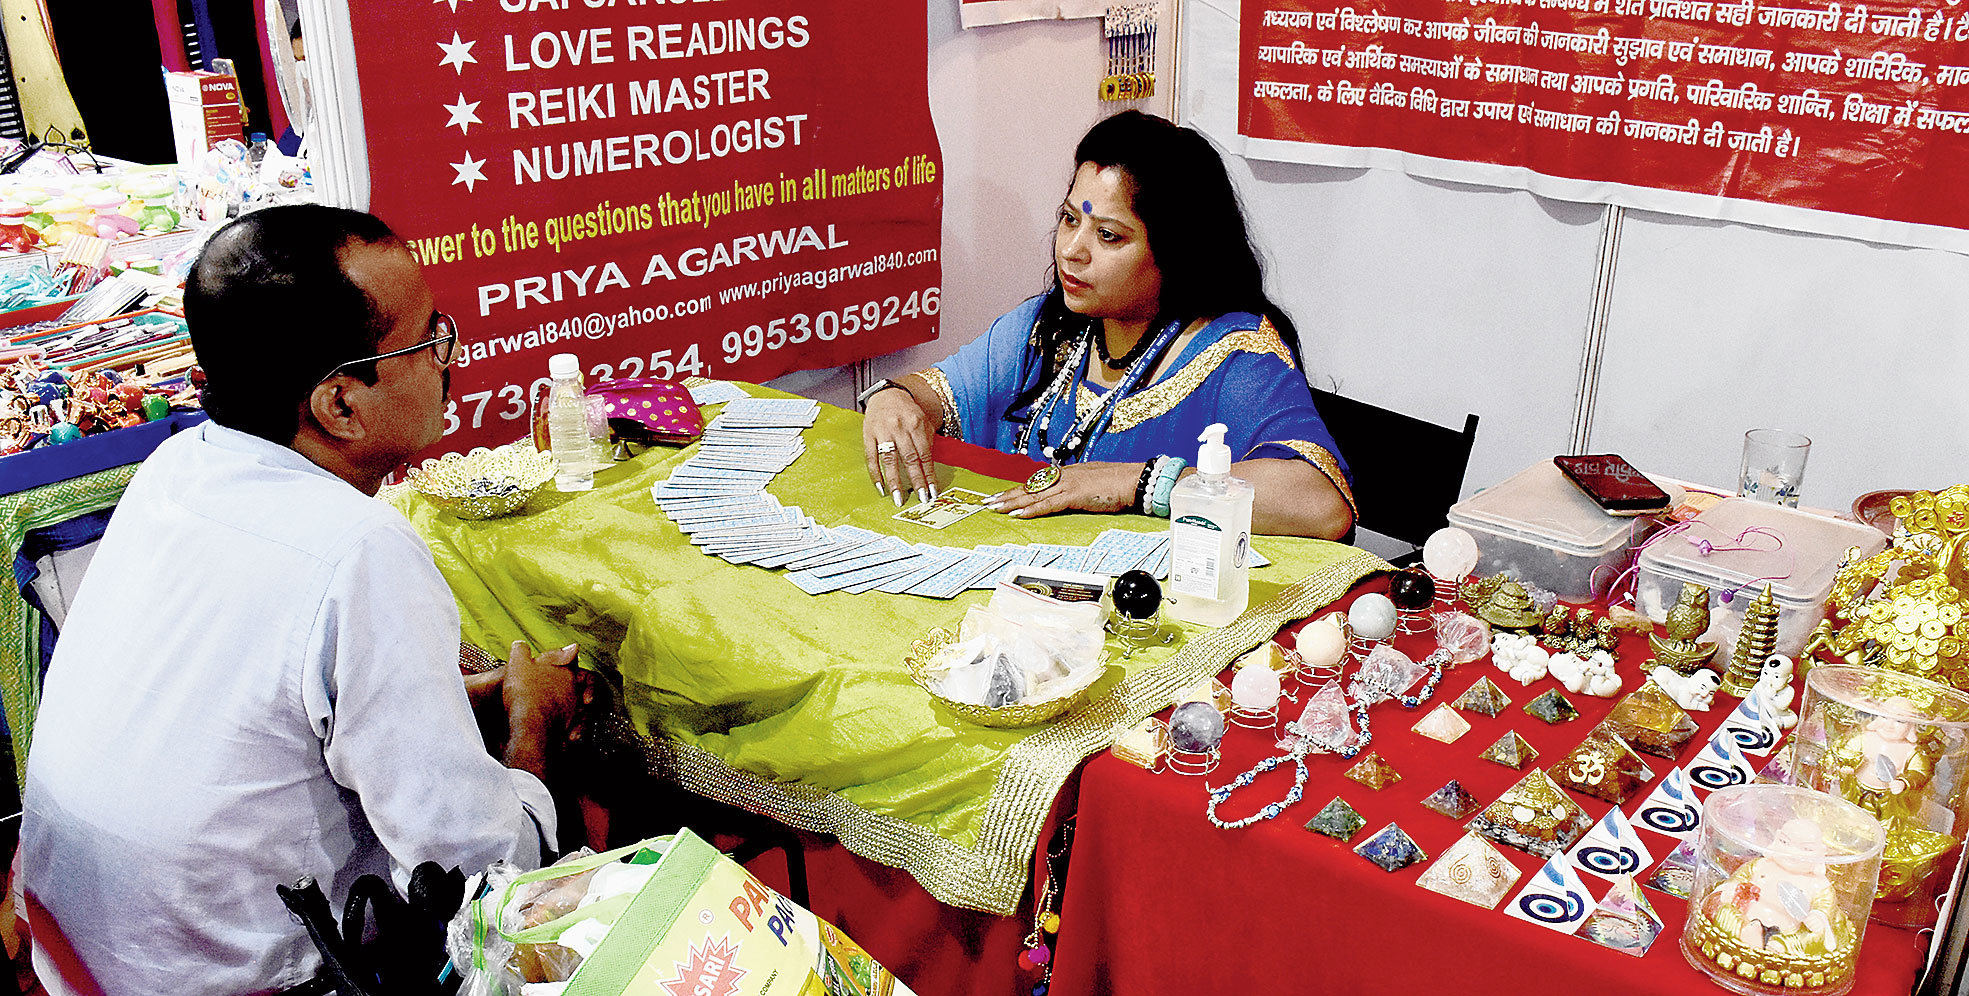 Relationship problems? Career headed south? Never in the pink of health? Maybe Priya Agarwal, a tarot card reader has an answer.